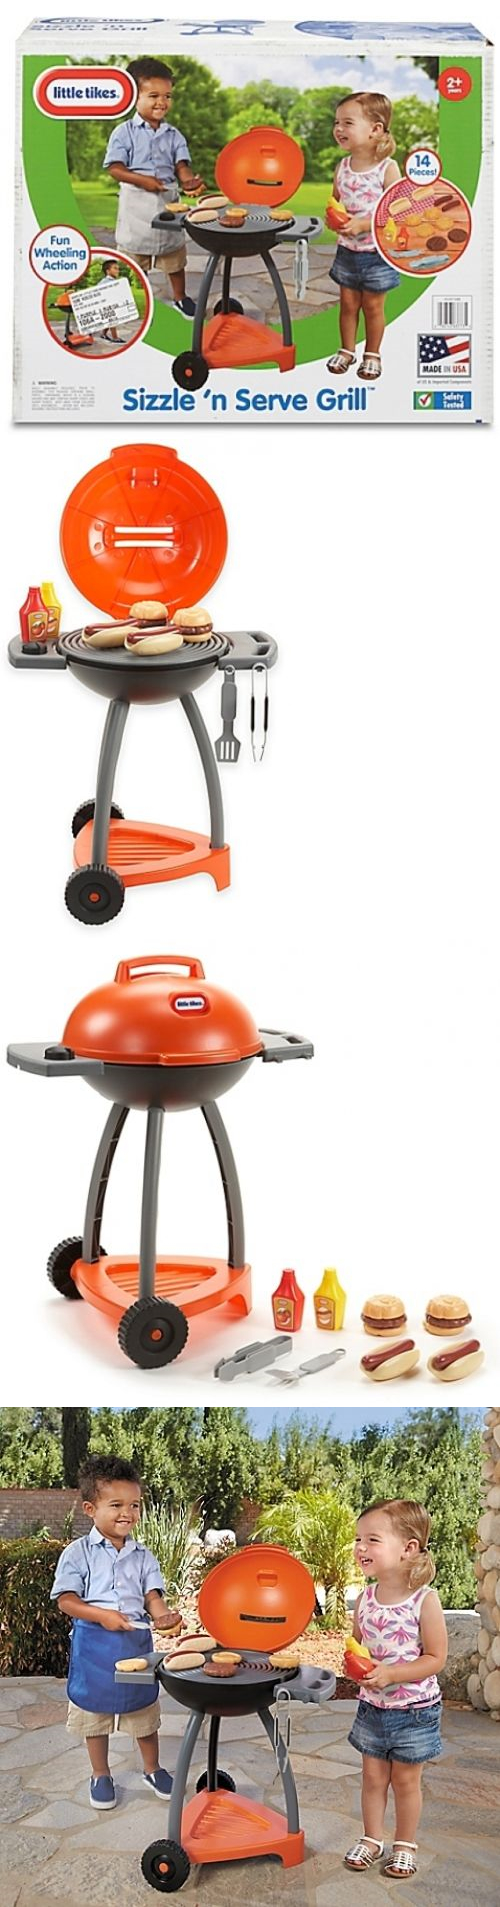 child size 2574 little tikes sizzle n serve grill indoor outdoor